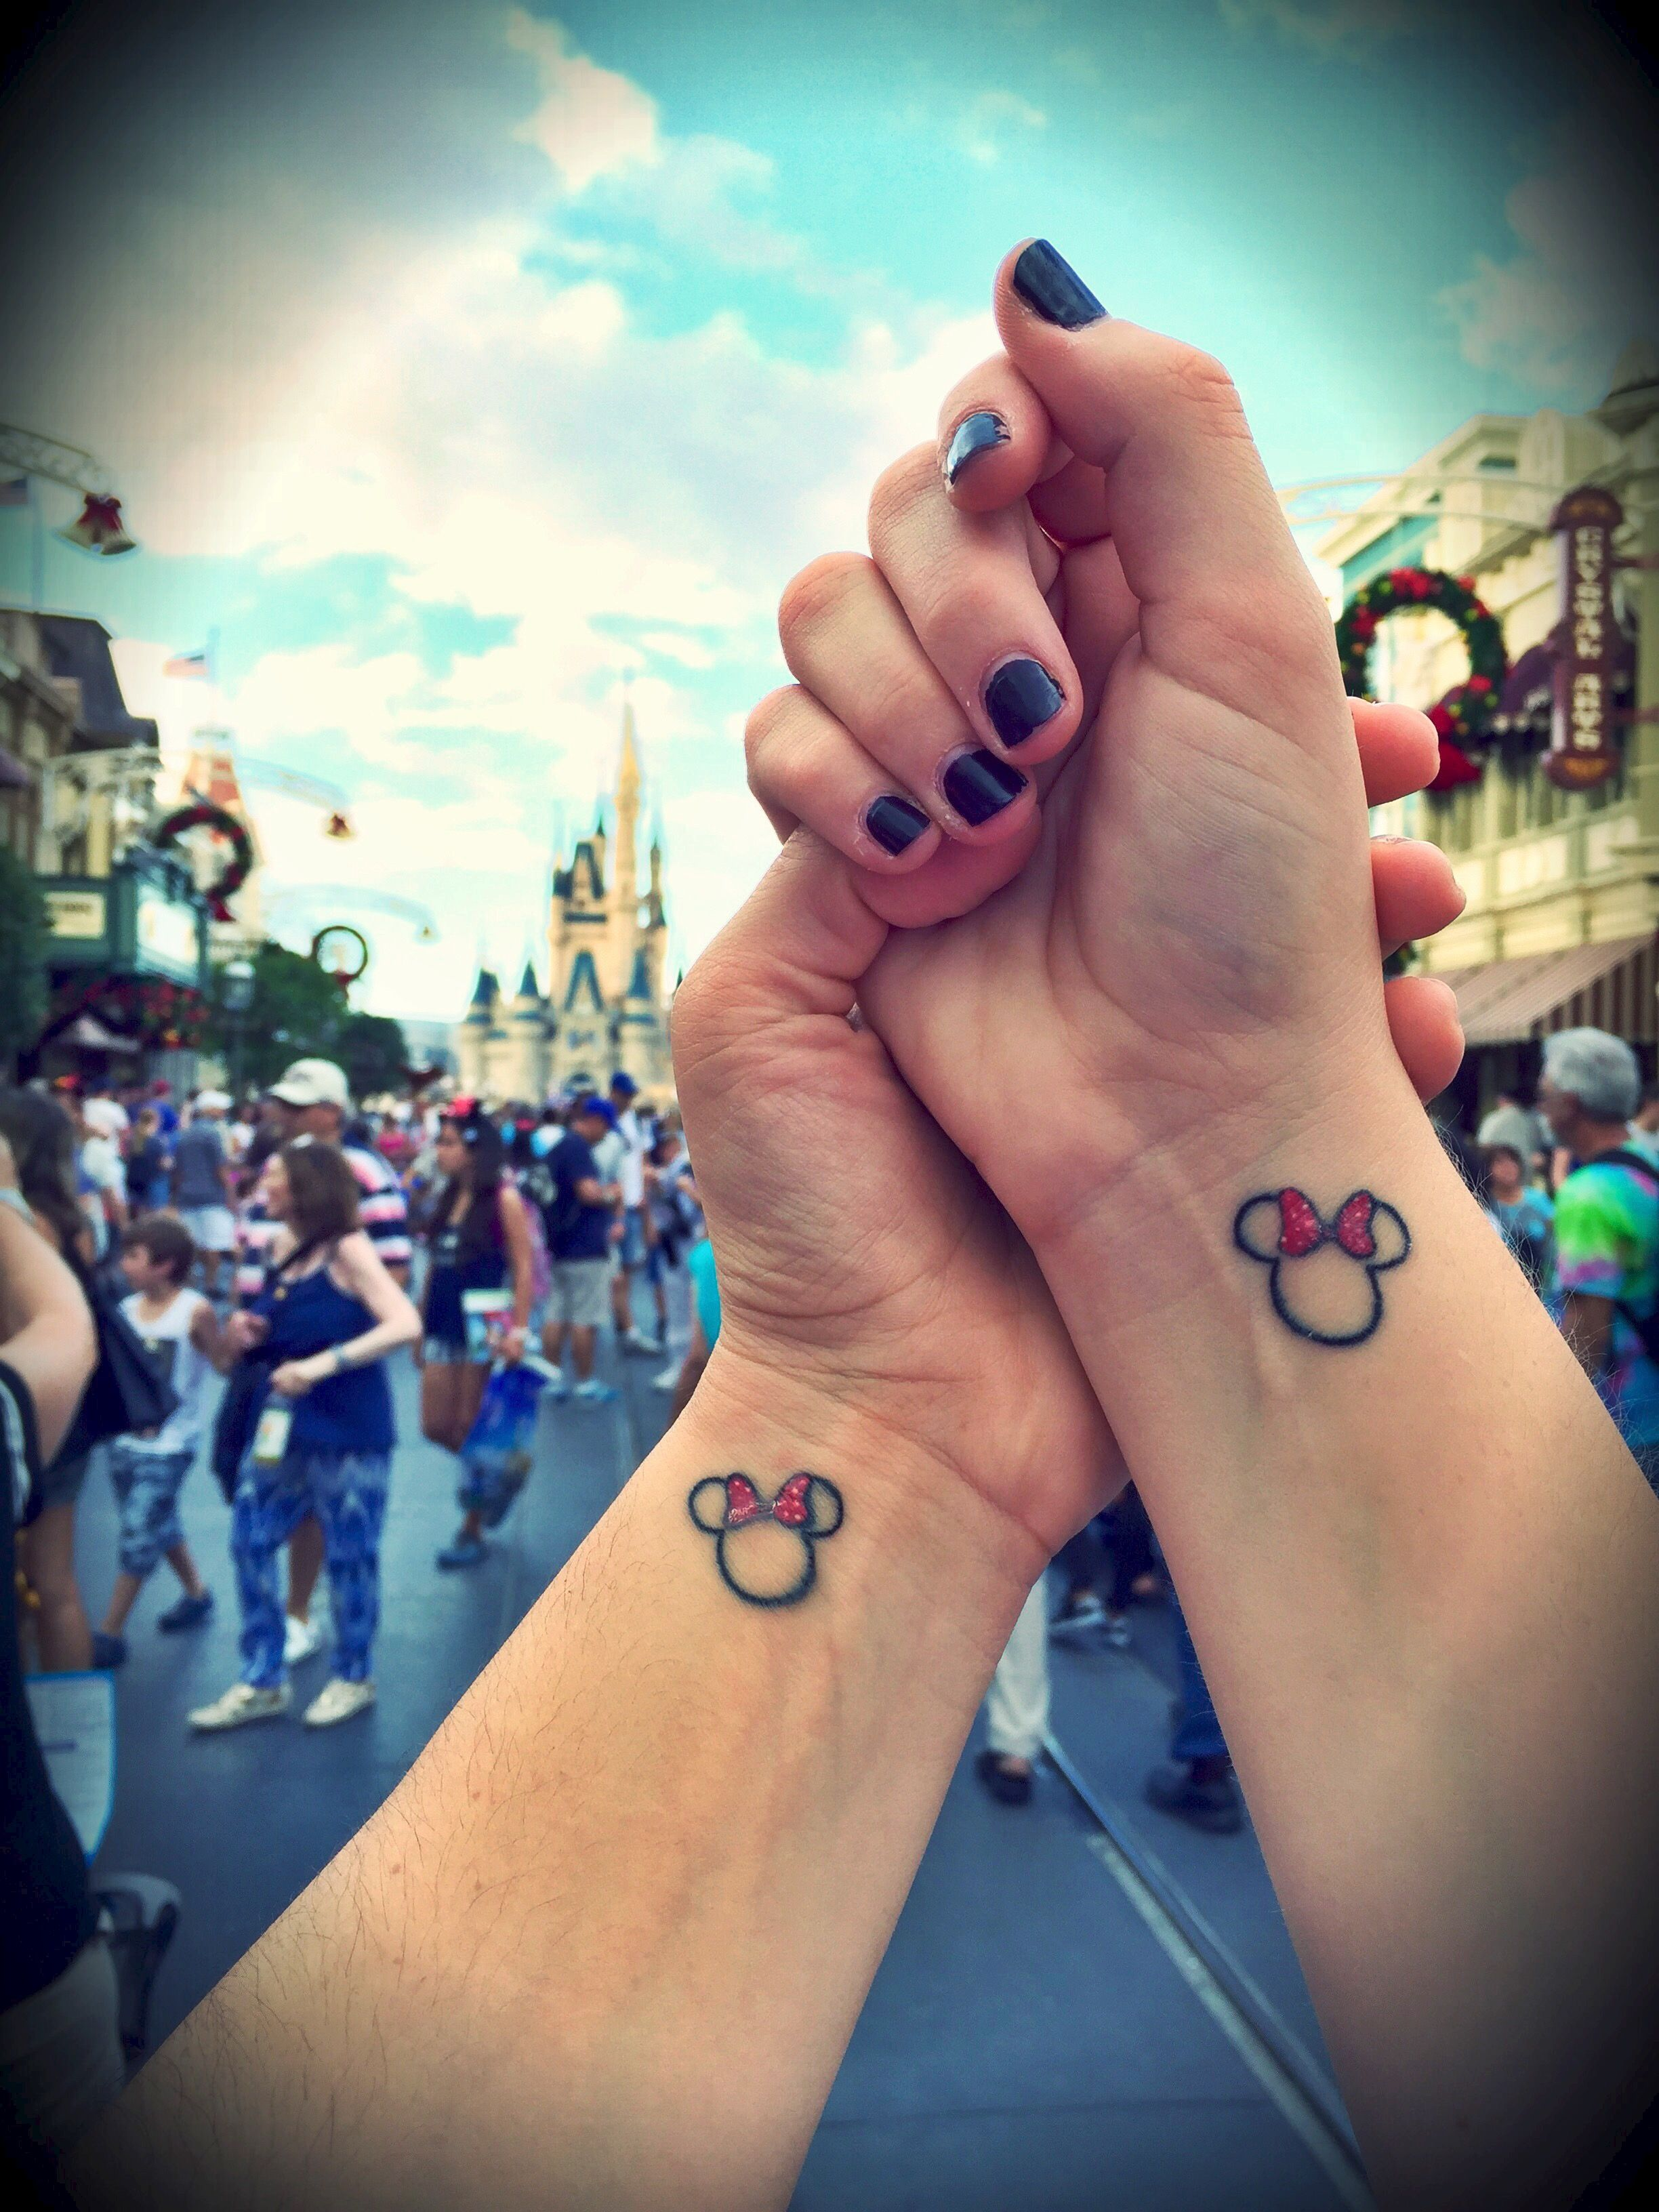 We Finally Got Our Matching Tattoos And Made It To Disney